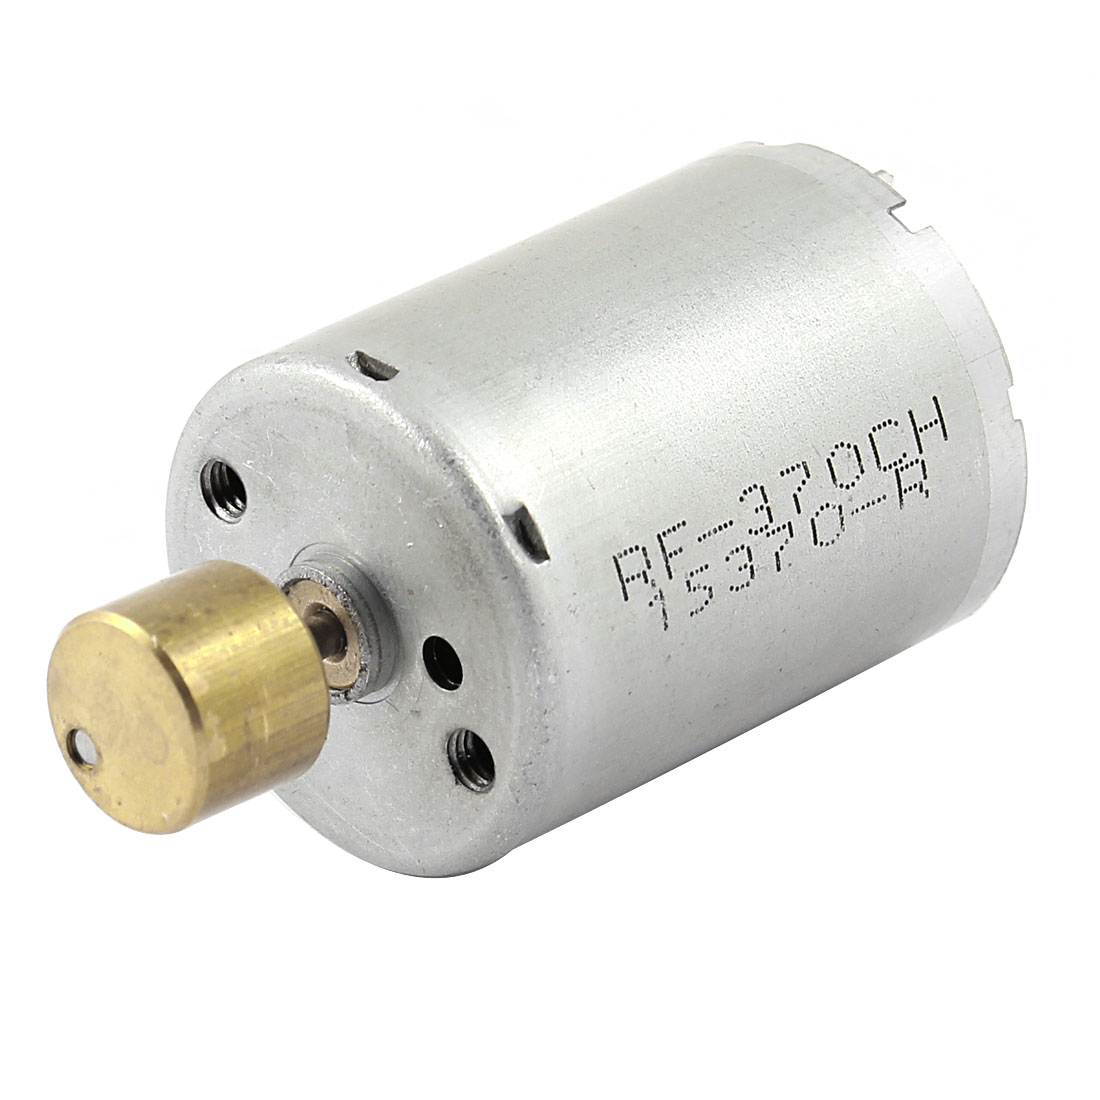 5600RPM DC 12V 6mm x 1.9mm Shaft Micro Motor for Gearbox